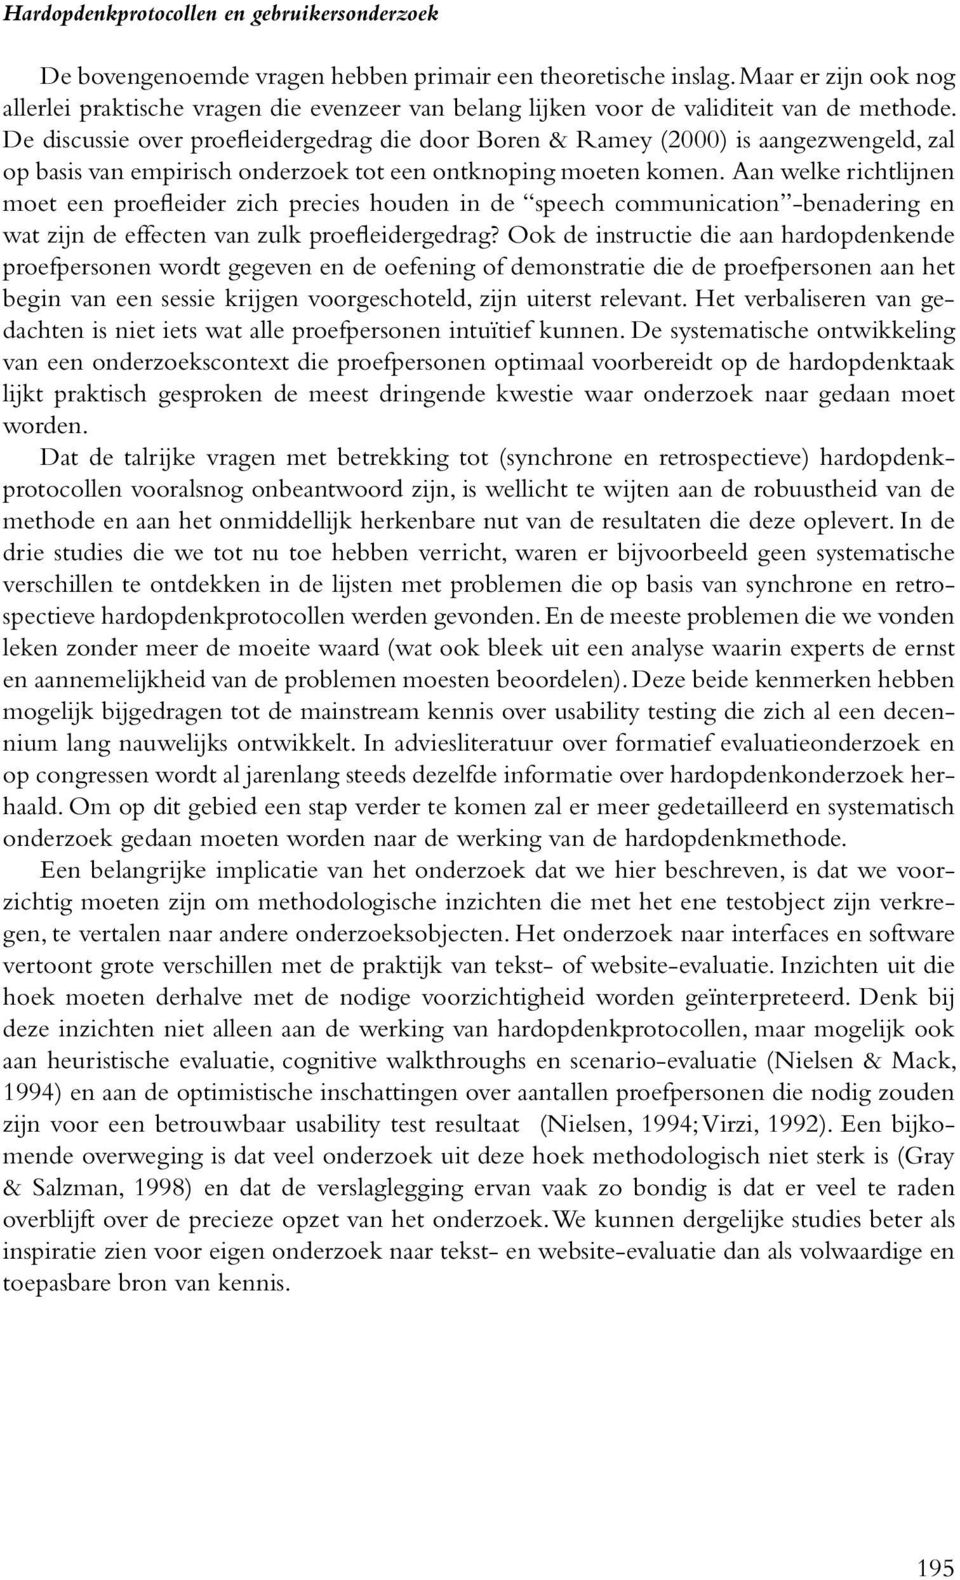 De discussie over proefleidergedrag die door Boren & Ramey (2000) is aangezwengeld, zal op basis van empirisch onderzoek tot een ontknoping moeten komen.